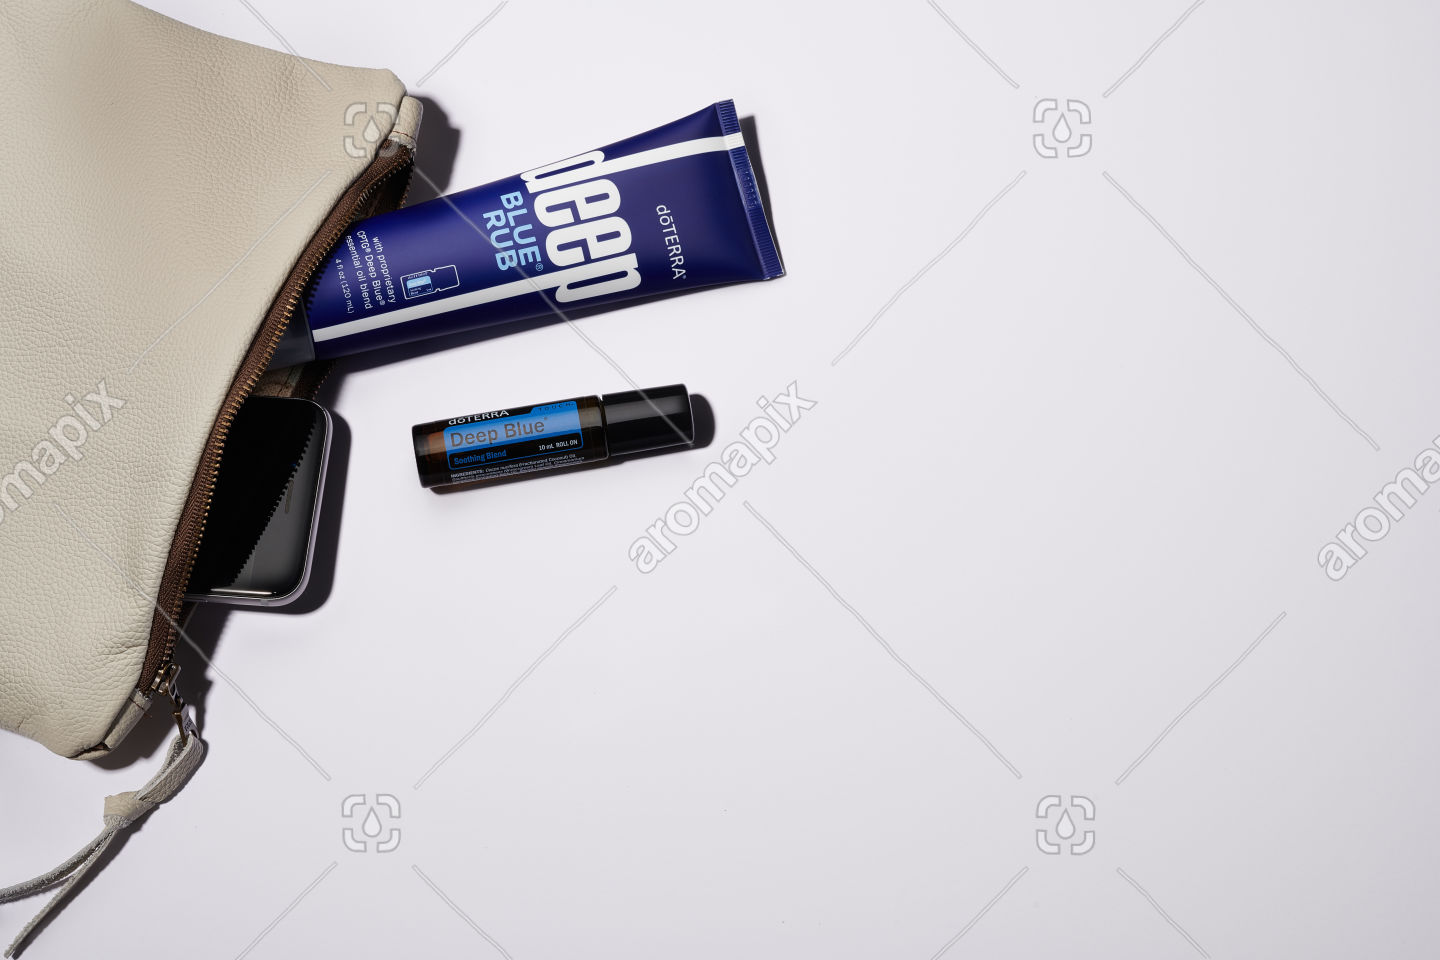 Woman's clutch with Deep Blue Rub, Deep Blue Touch and phone on white background